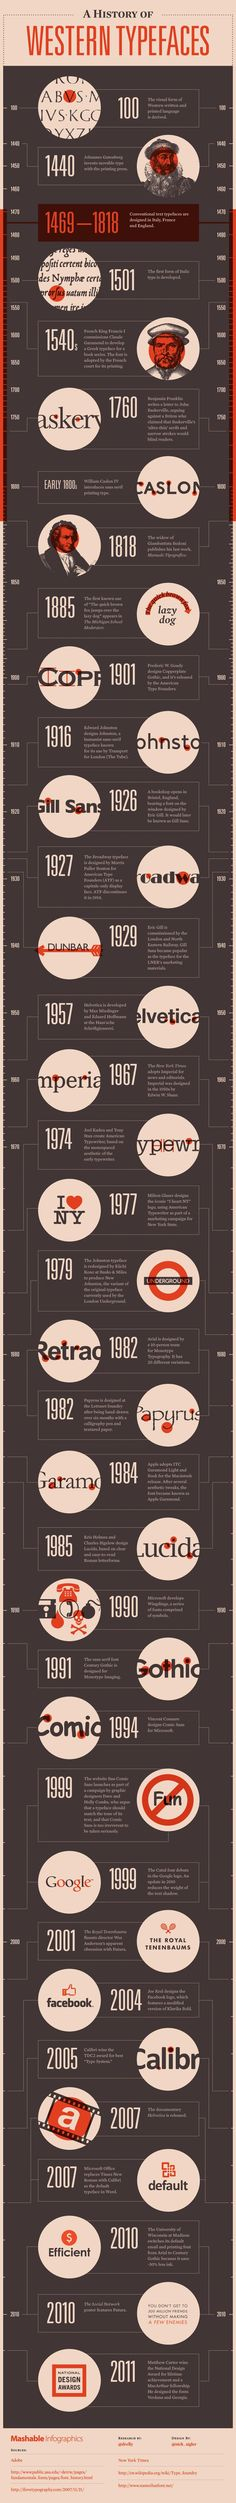 A History of Western Typefaces @Dani Kelley